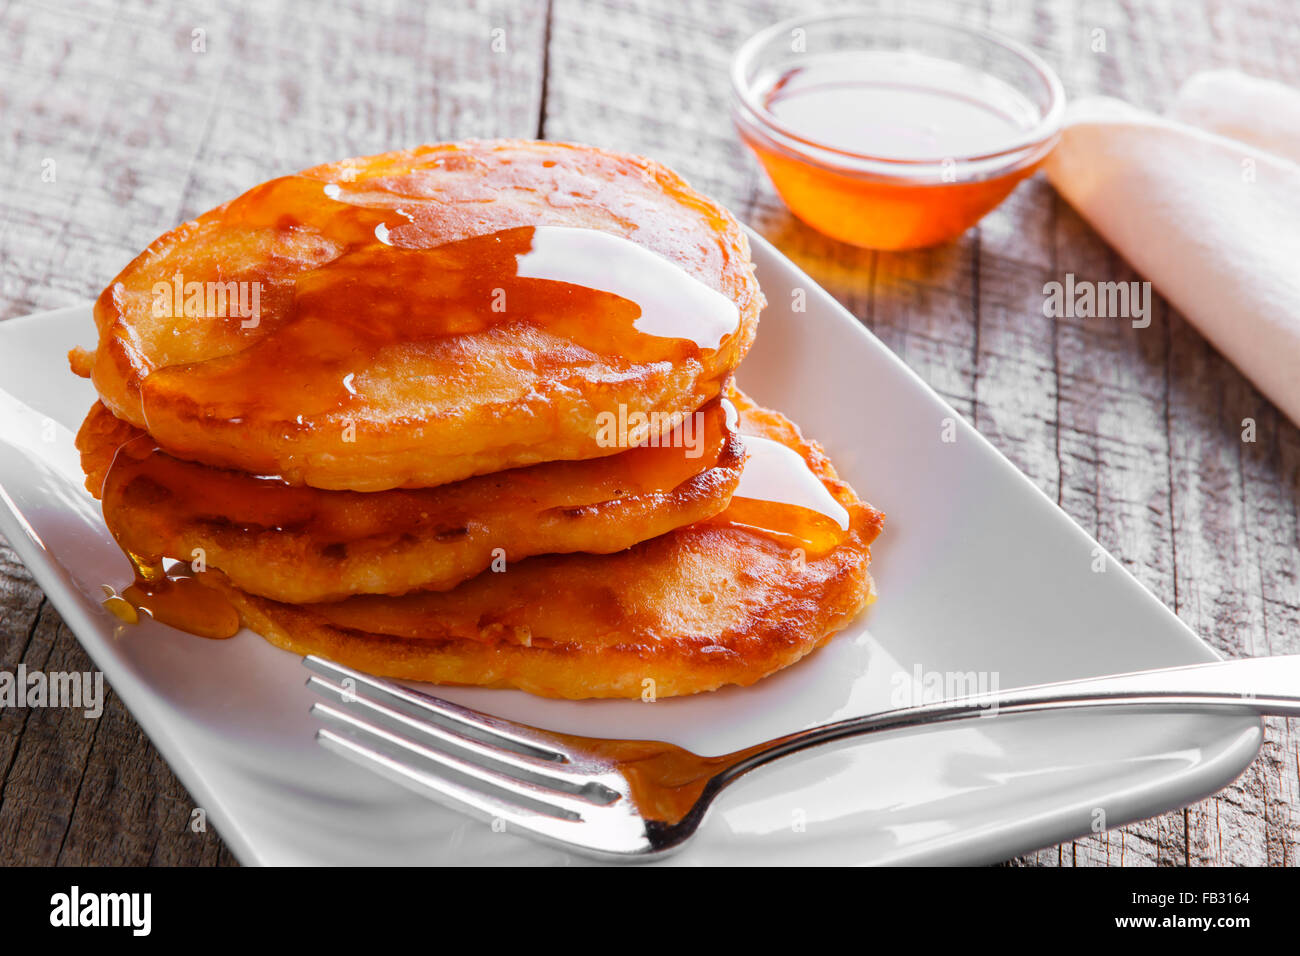 pancakes fritters carrot with maple syrup breakfast - Stock Image